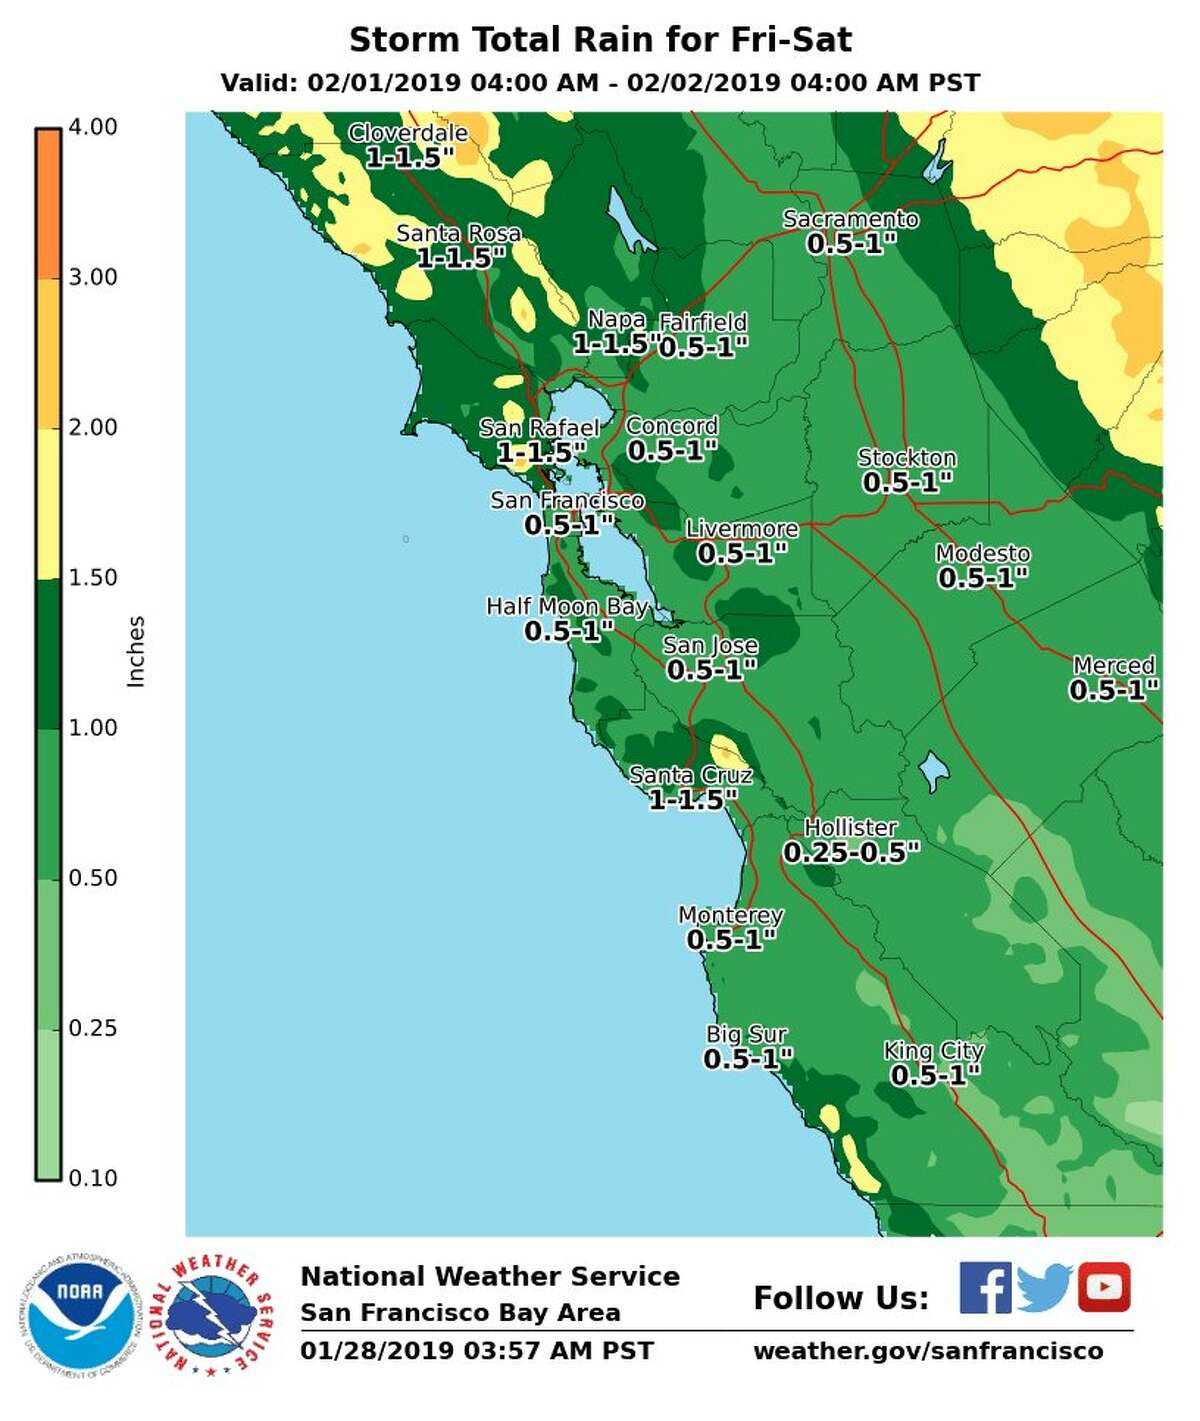 National Weather Service forecast: storm total rain for Feb. 1-Feb. 2, 2019.